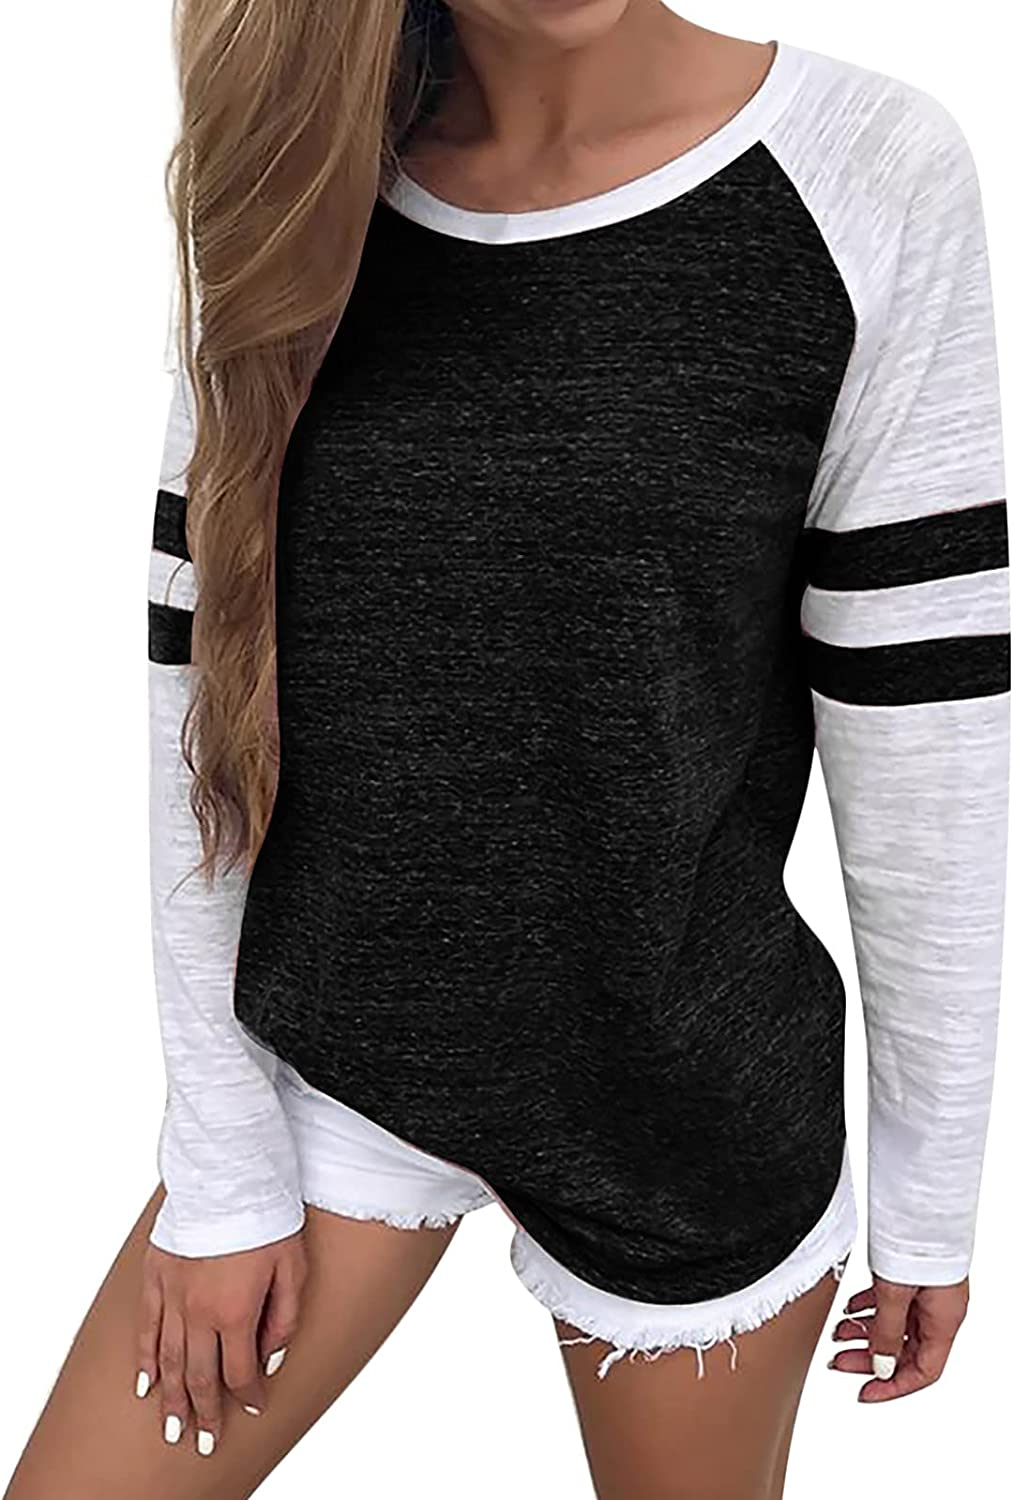 Women's Fall Color Block Sweatshirts Casual Long Sleeve Crewneck Tops Loose Fit Workout Tee Trendy Oversized Blouses